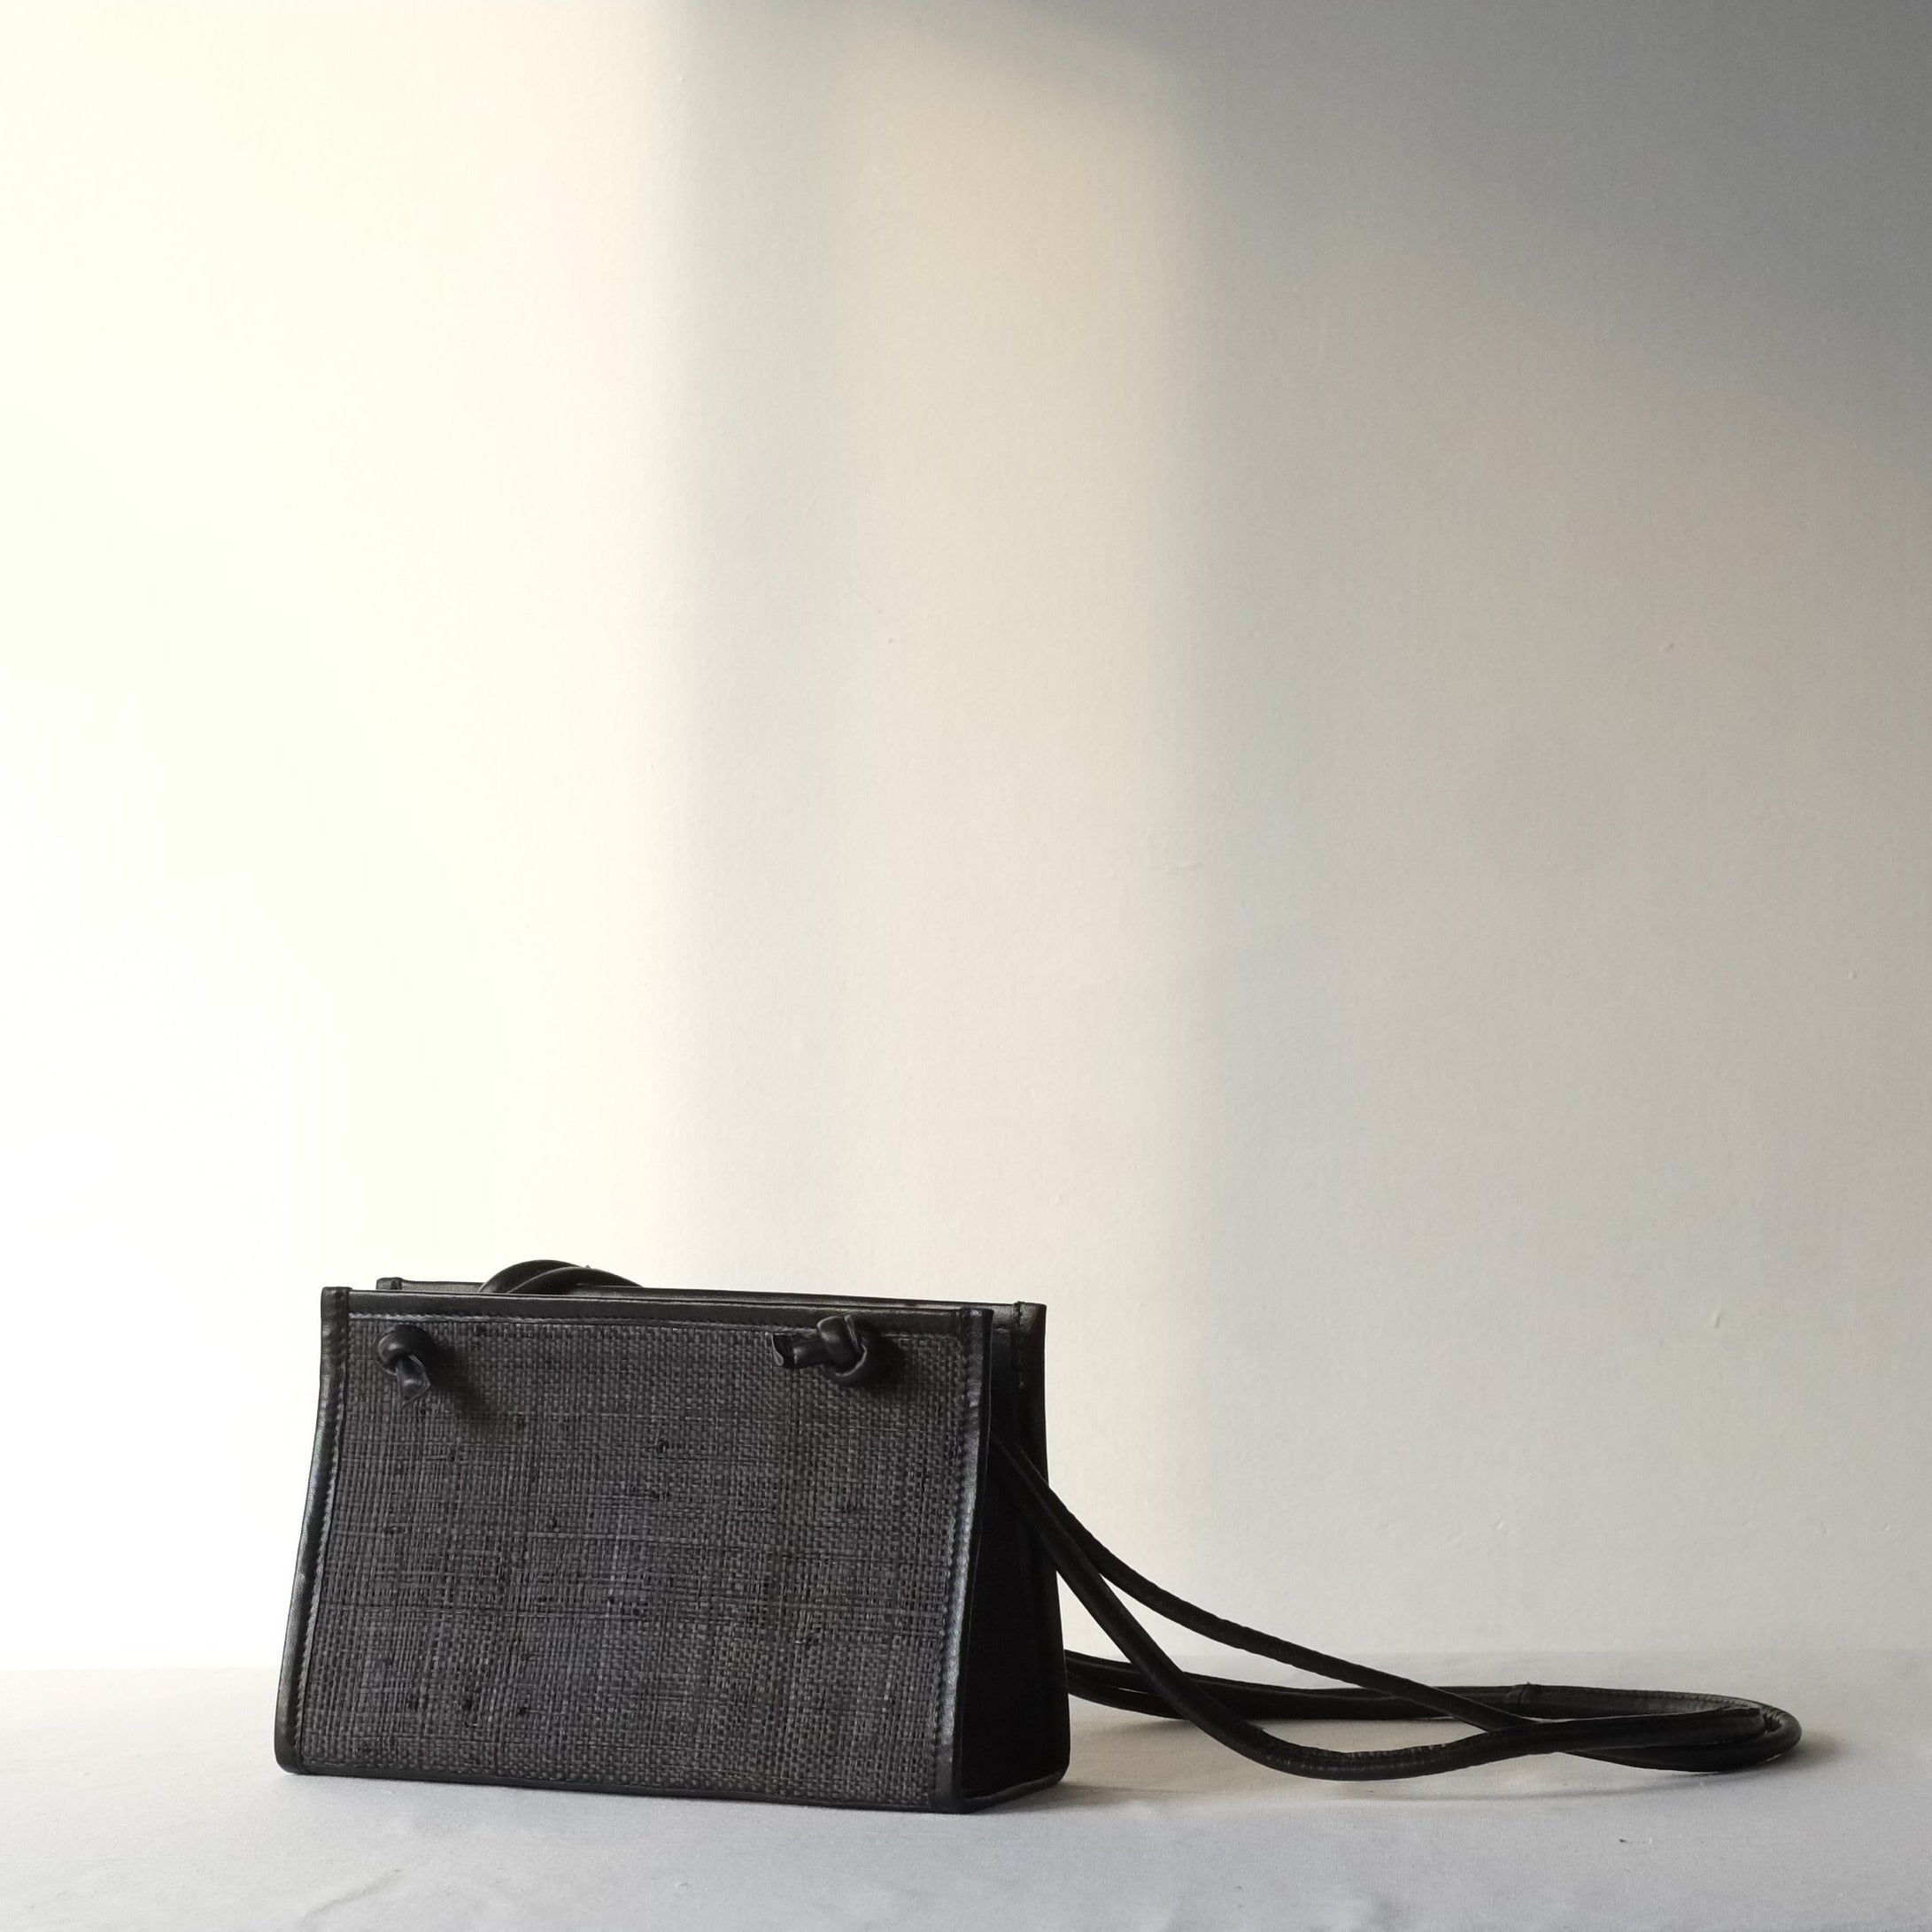 Noa Crossbody Sling - All Black